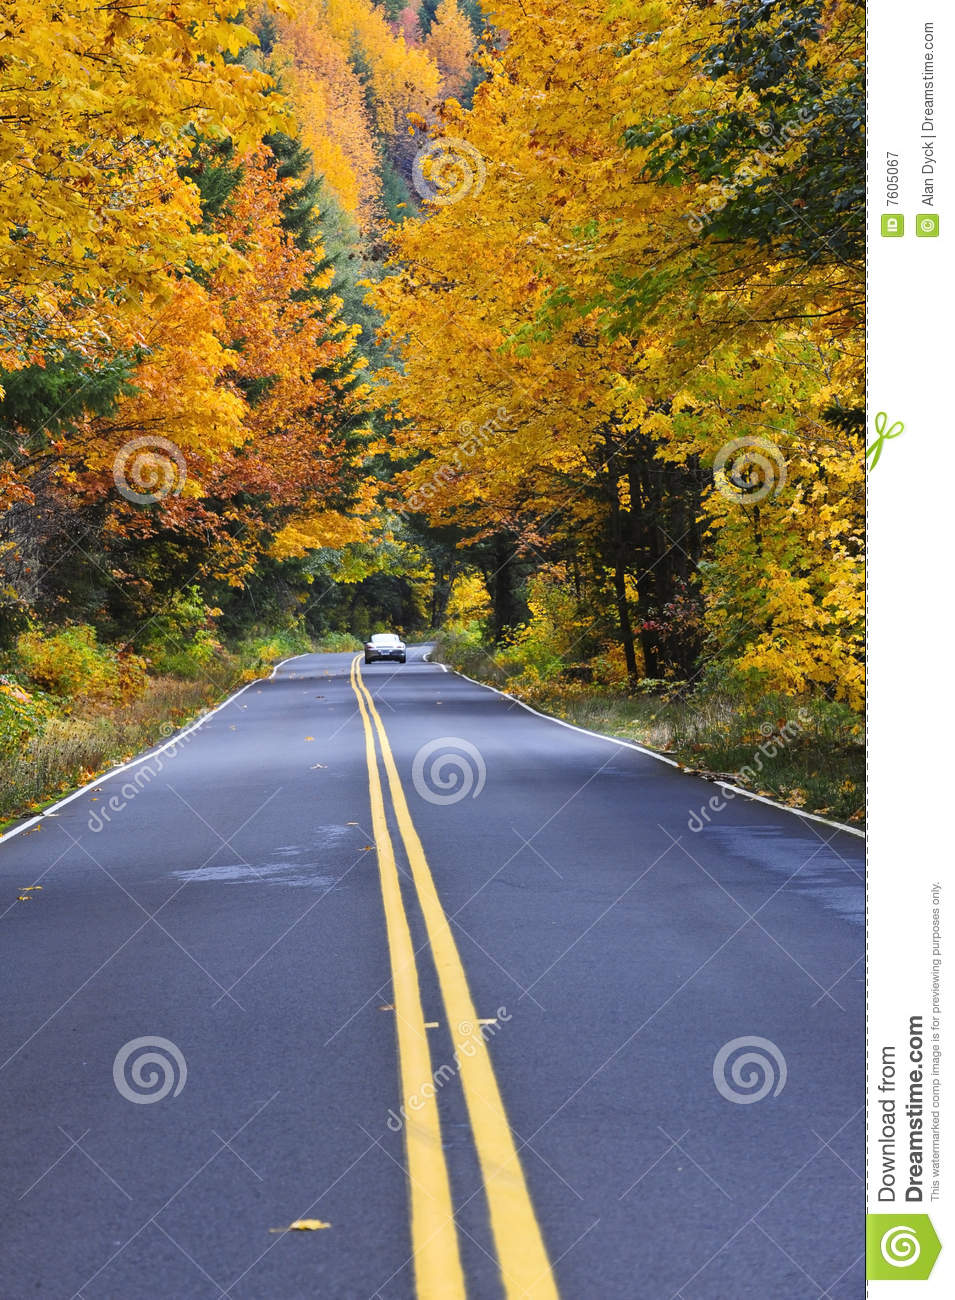 Time Road Id Roblox: Fall Road With Car In Distance Royalty Free Stock